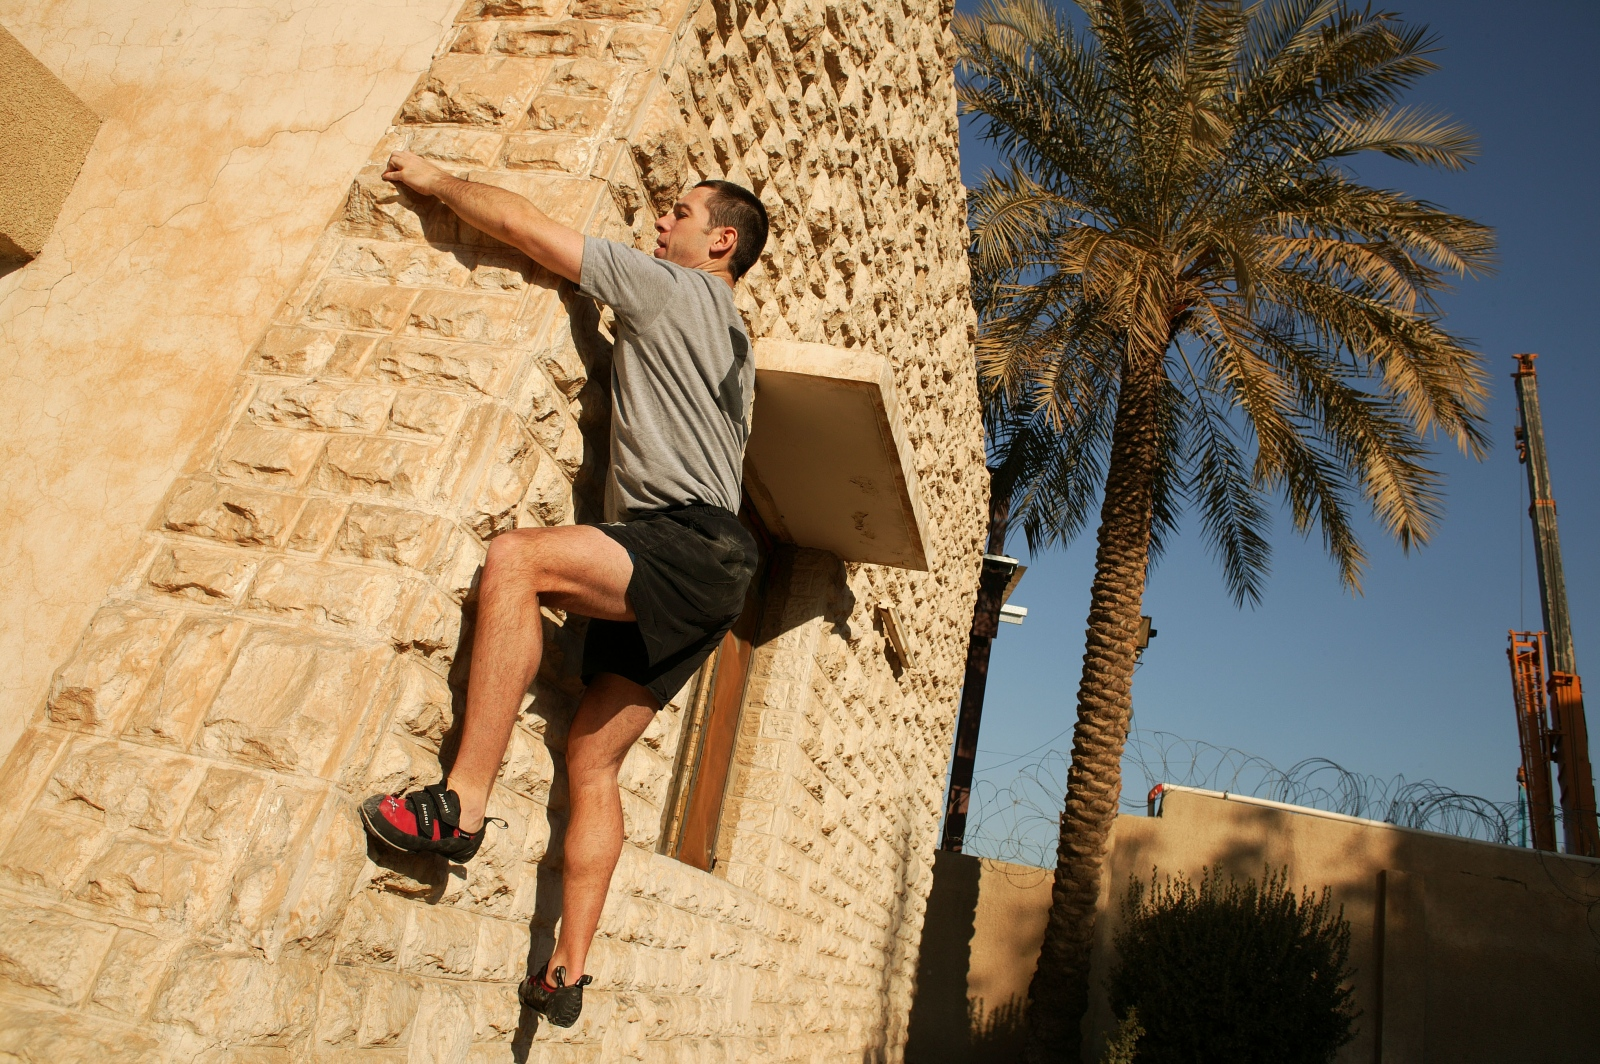 CPT David Hile, MD, an emergency physician with the Baghdad Combat Area Support Hospital climbs the wall of a residence building to stay in shape and reduce stress.